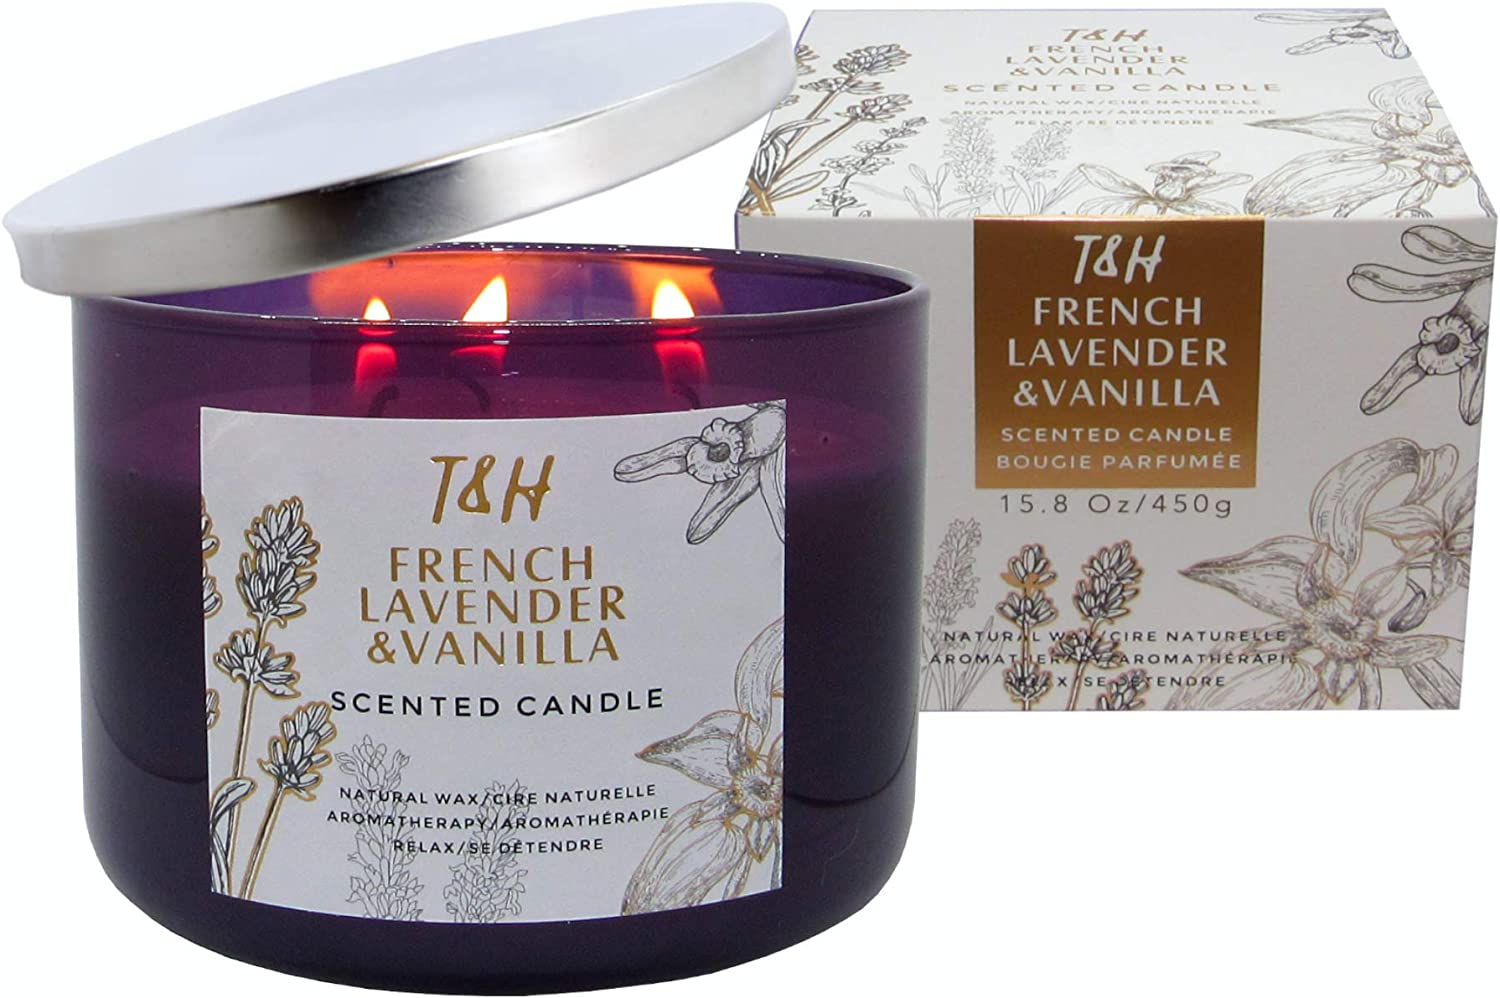 T&H French Lavender & Vanilla Candle Aromatherapy Relaxation Handmade Pure Soy Wax 3-Wick 80 Hour Burn 16 Ounce Long Lasting